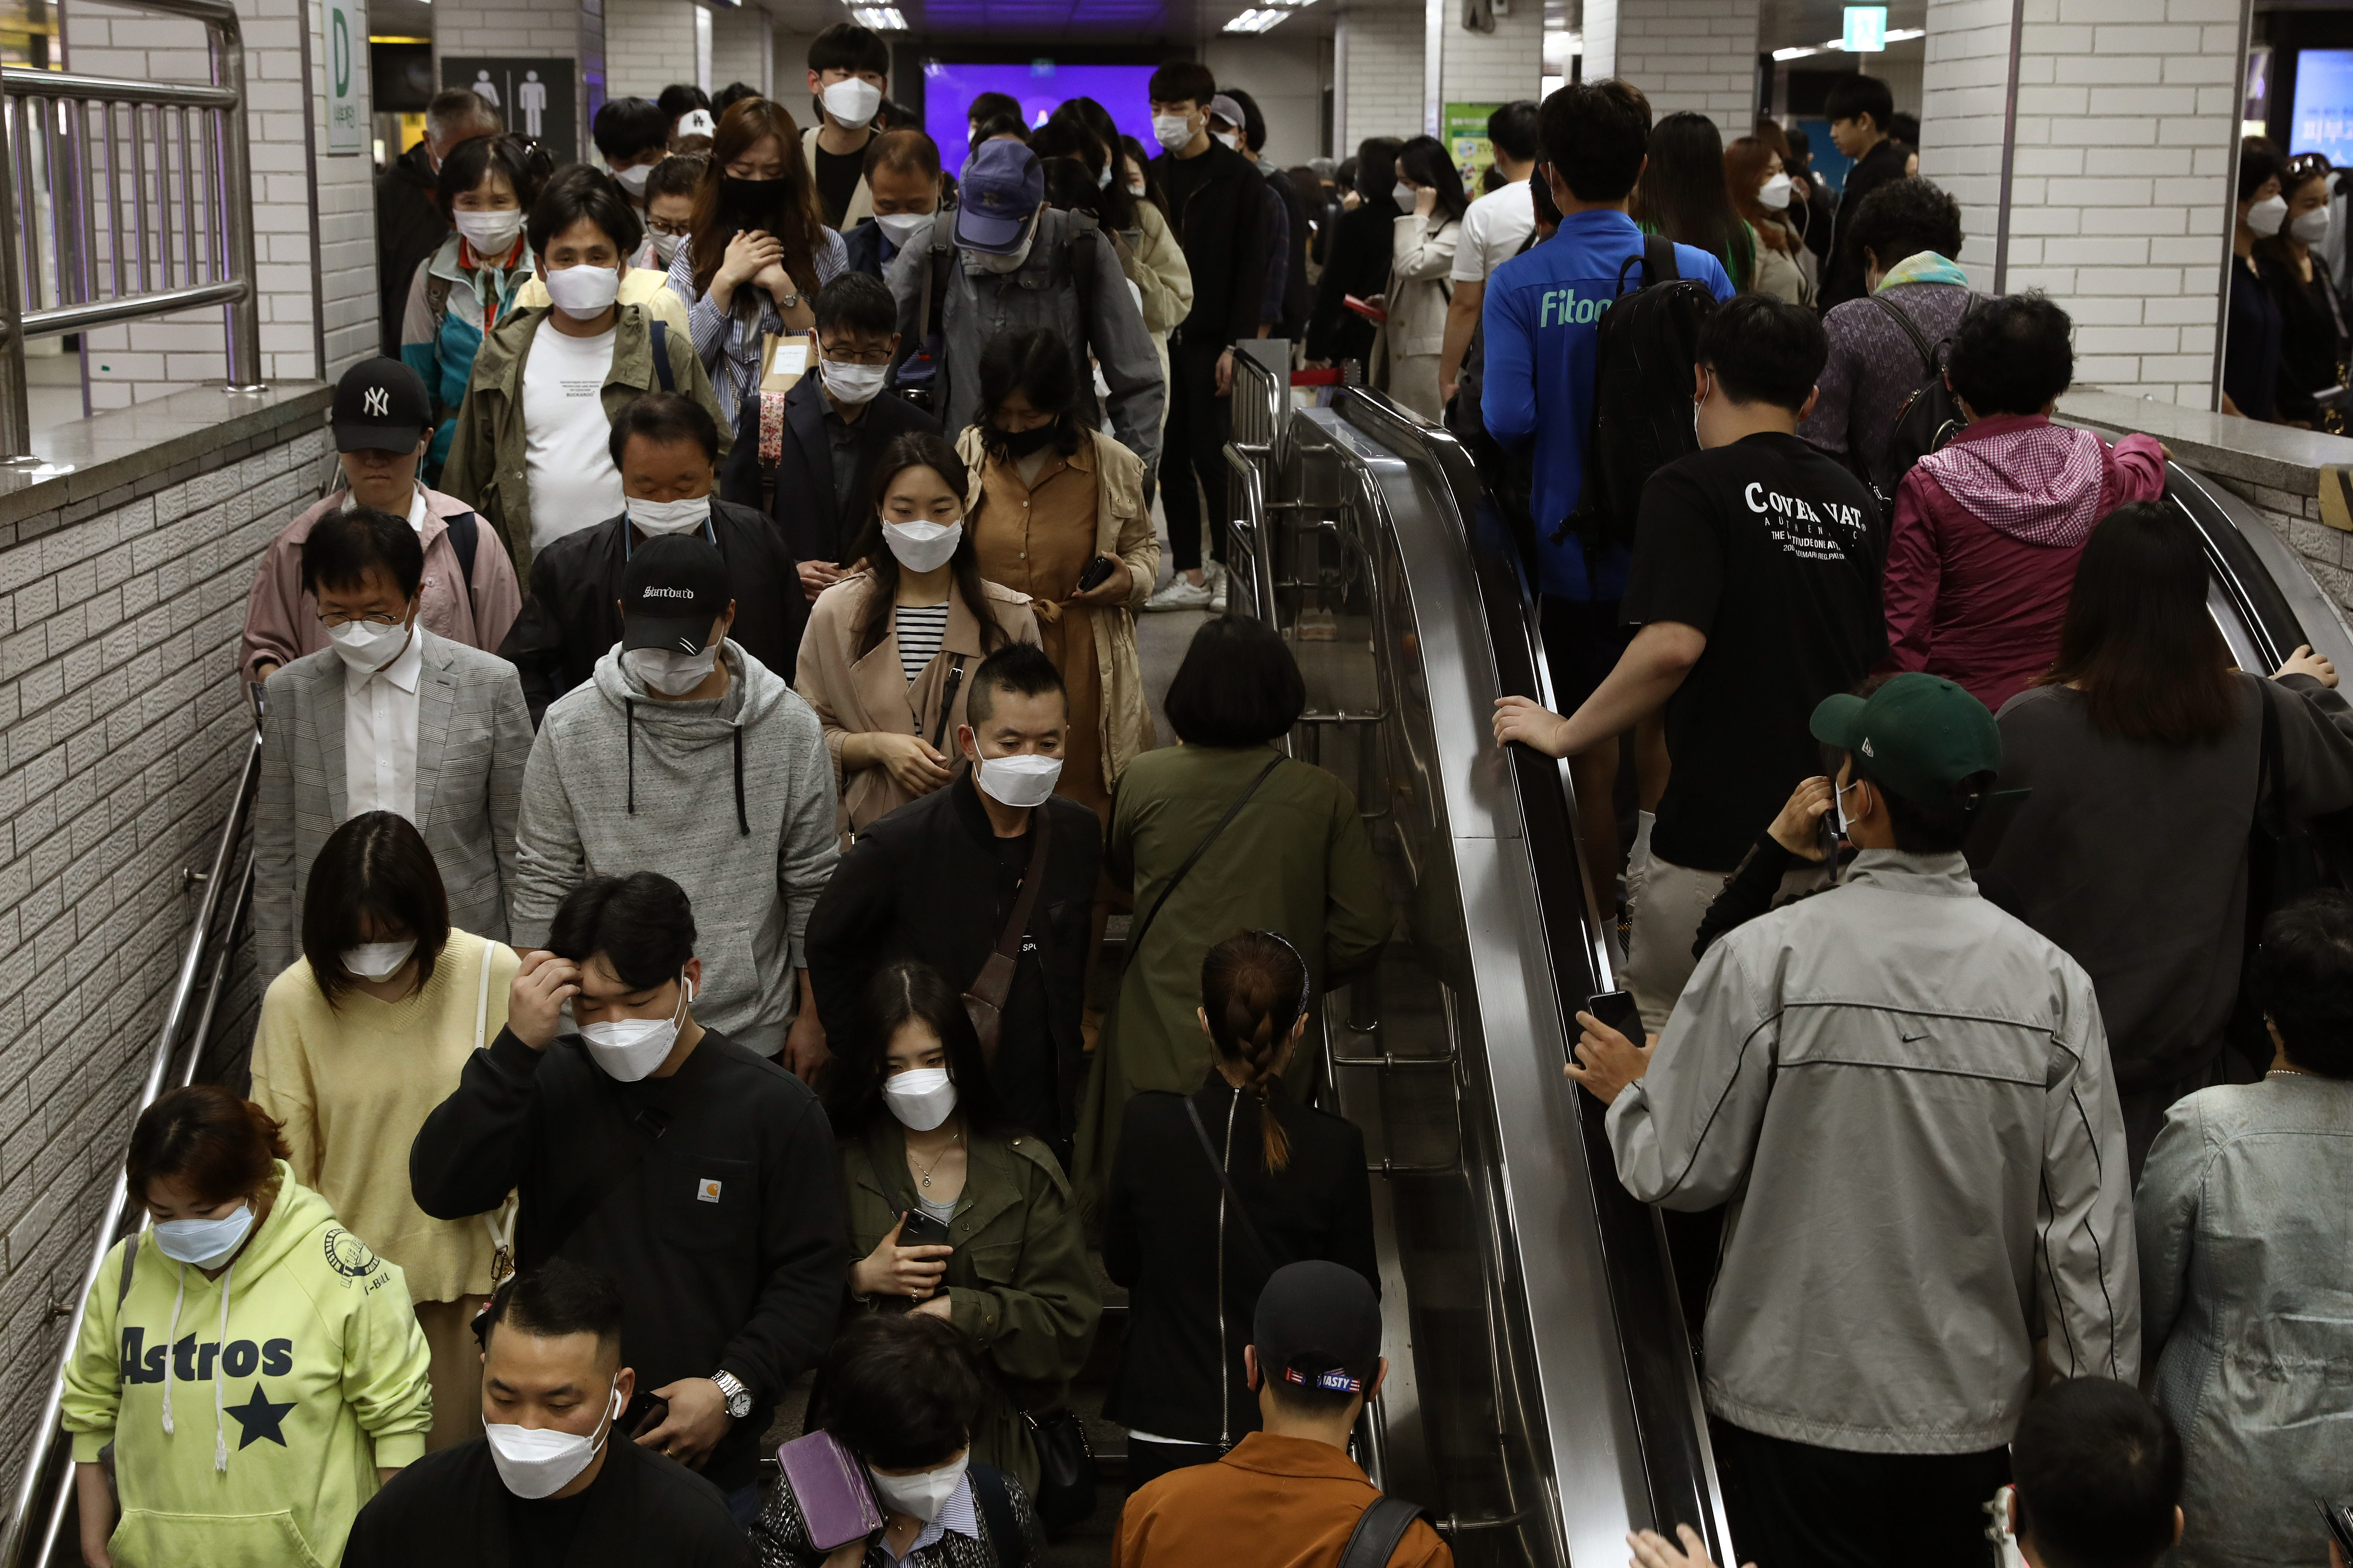 SEOUL, SOUTH KOREA - MAY 11: South Korean commuters wear protective masks as they crowd on an escalator and stairs after getting off the subway during rush hour on May 11, 2020 in Seoul, South Korea. Coronavirus cases linked to clubs and bars in Seoul's multicultural district of Itaewon have jumped to 54, an official said Sunday, as South Korea struggles to stop the cluster infection from spreading further. According to the Korea Center for Disease Control and Prevention, 35 new cases were reported. The total number of infections in the nation tallies at 10,909. (Photo by Chung Sung-Jun/Getty Images)